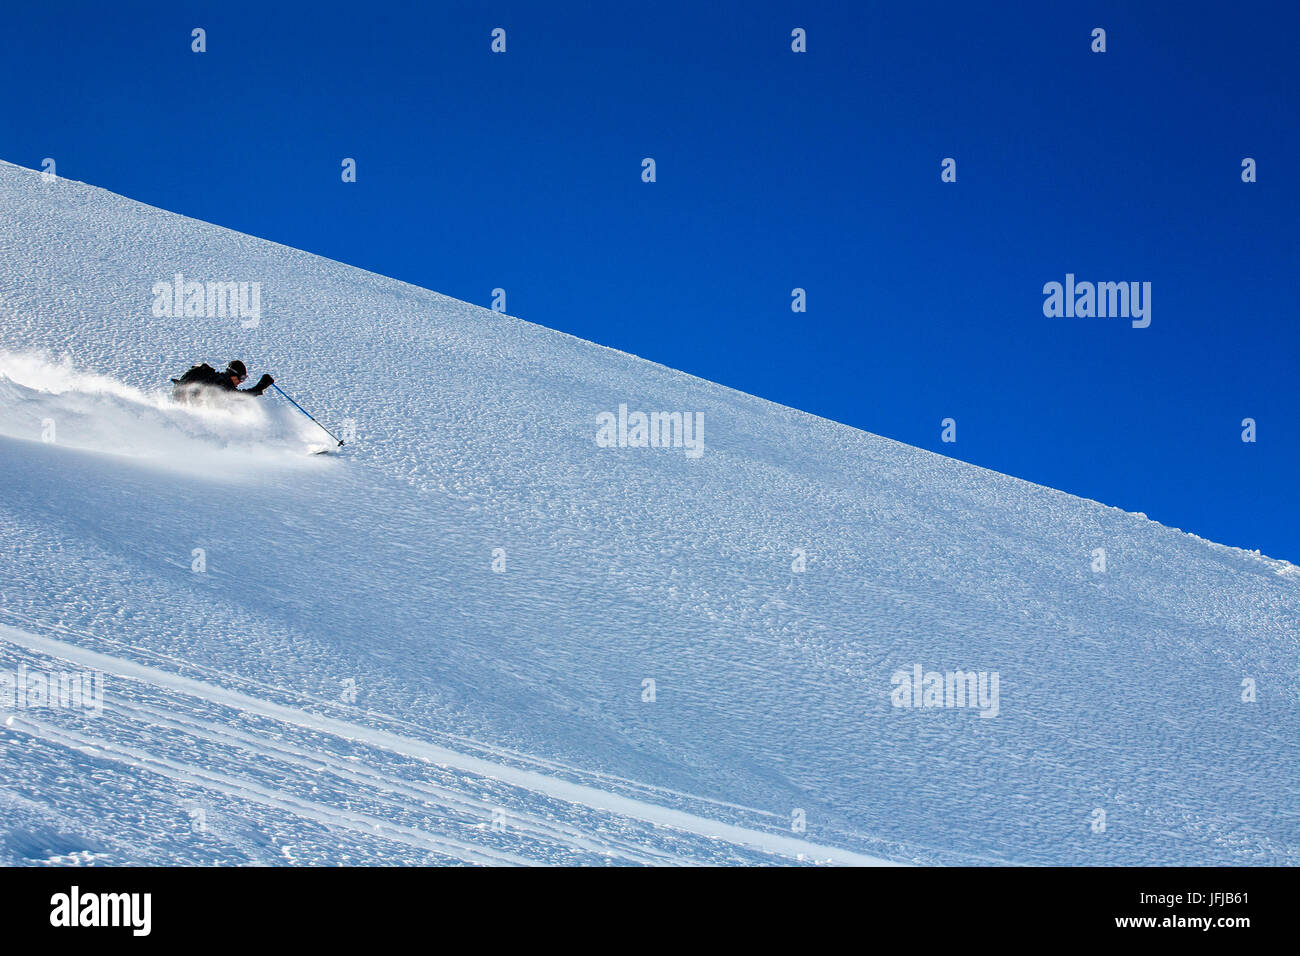 Orobie alps, freeride at Arigna valley, Lombardy, italy - Stock Image